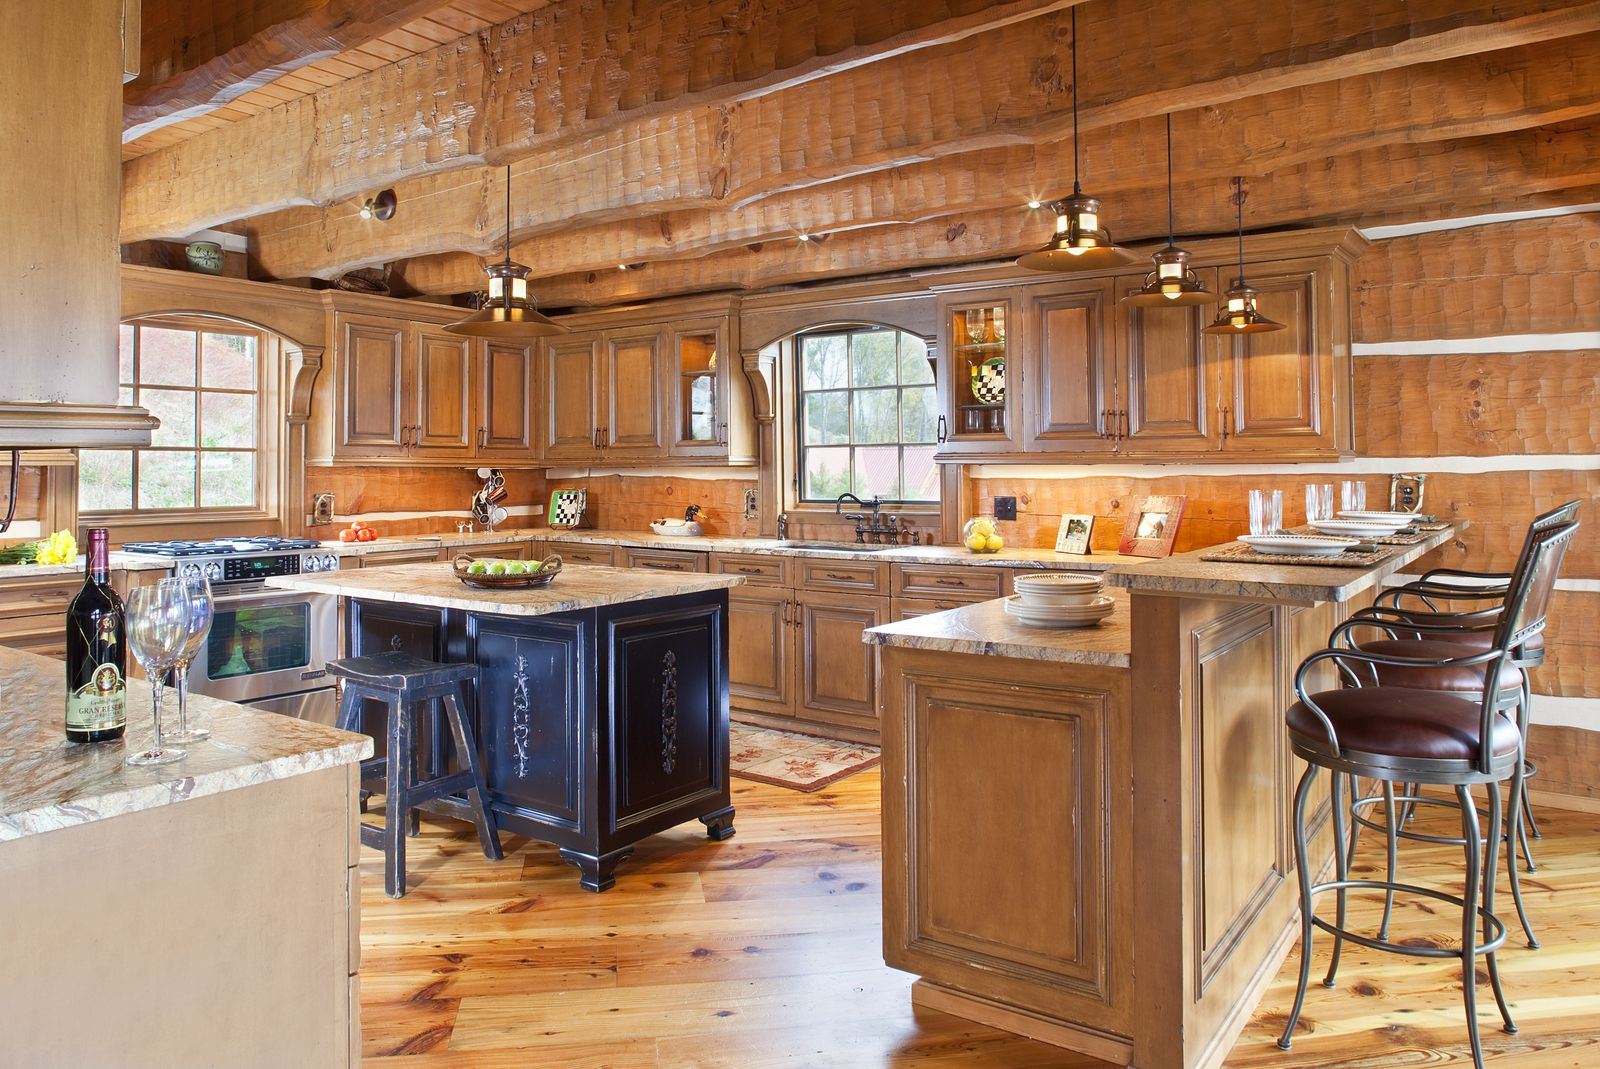 Today s log homes for advantageous and luxurious living - Home kitchen design ideas ...